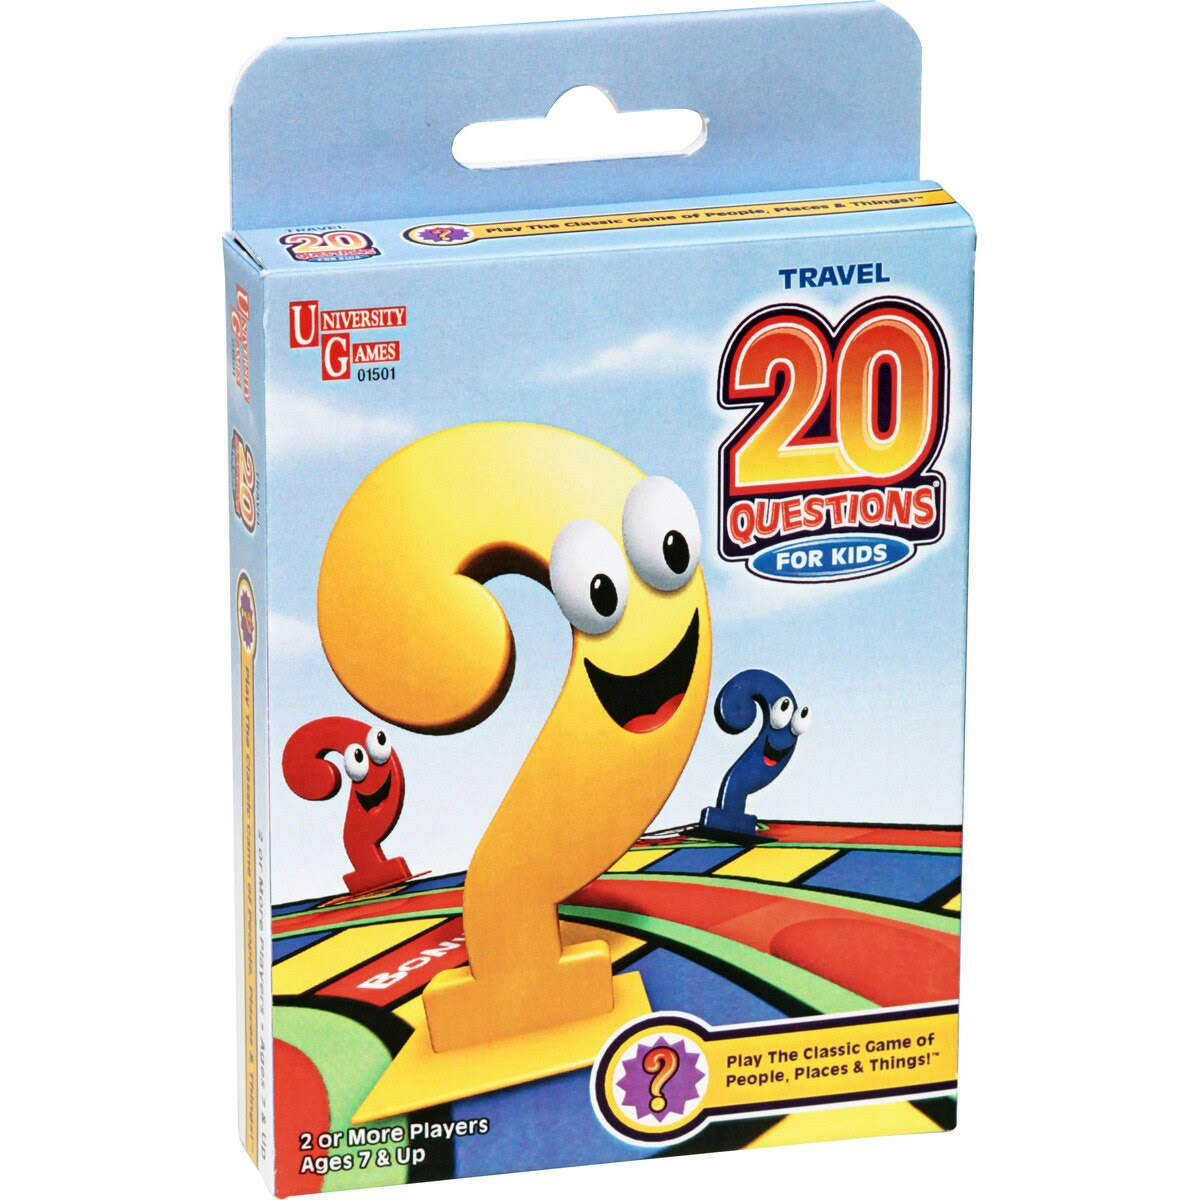 University Games Travel 20 Questions for Kids Card Game